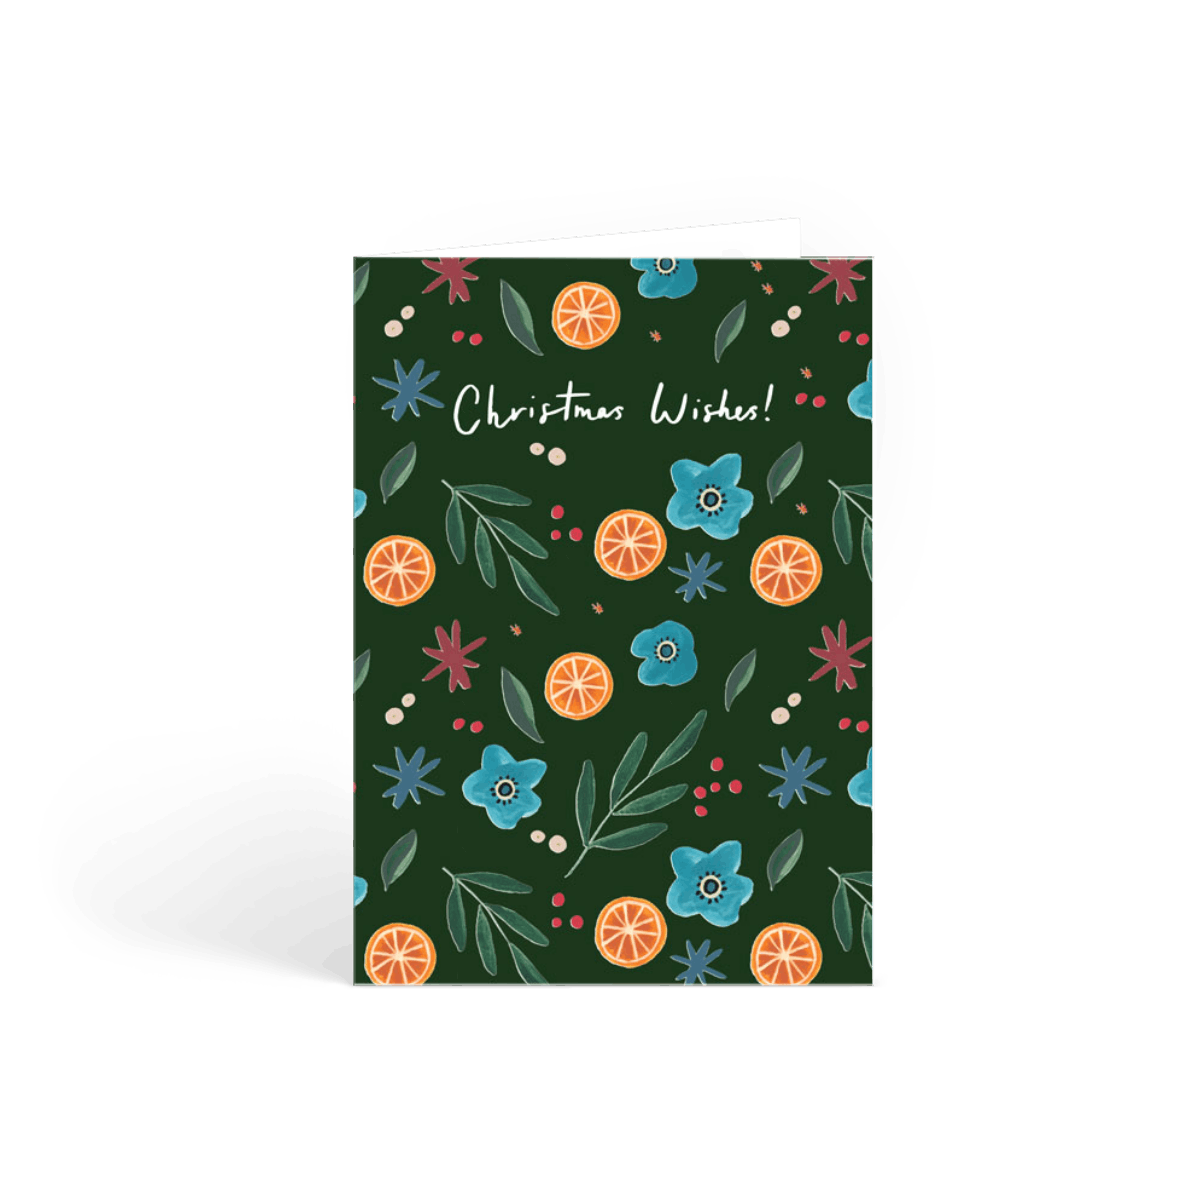 Https%3a%2f%2fwww.papier.com%2fproduct image%2f91279%2f2%2fchristmas clementine 22801 front 1570188981.png?ixlib=rb 1.1